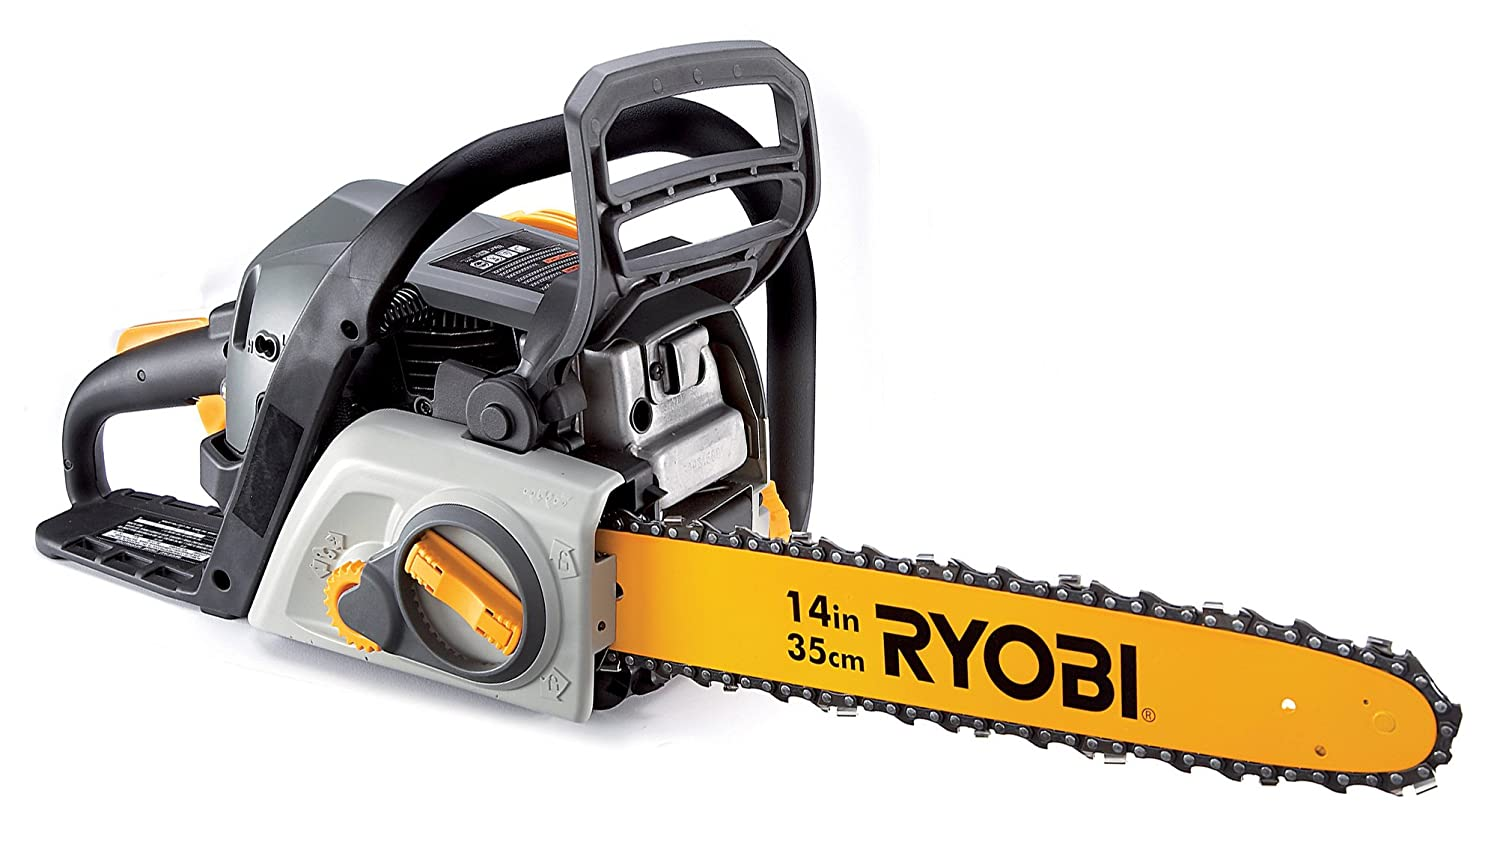 Ryobi rcs3535ca 35cc petrol chainsaw 14 inch amazon diy ryobi rcs3535ca 35cc petrol chainsaw 14 inch amazon diy tools keyboard keysfo Gallery